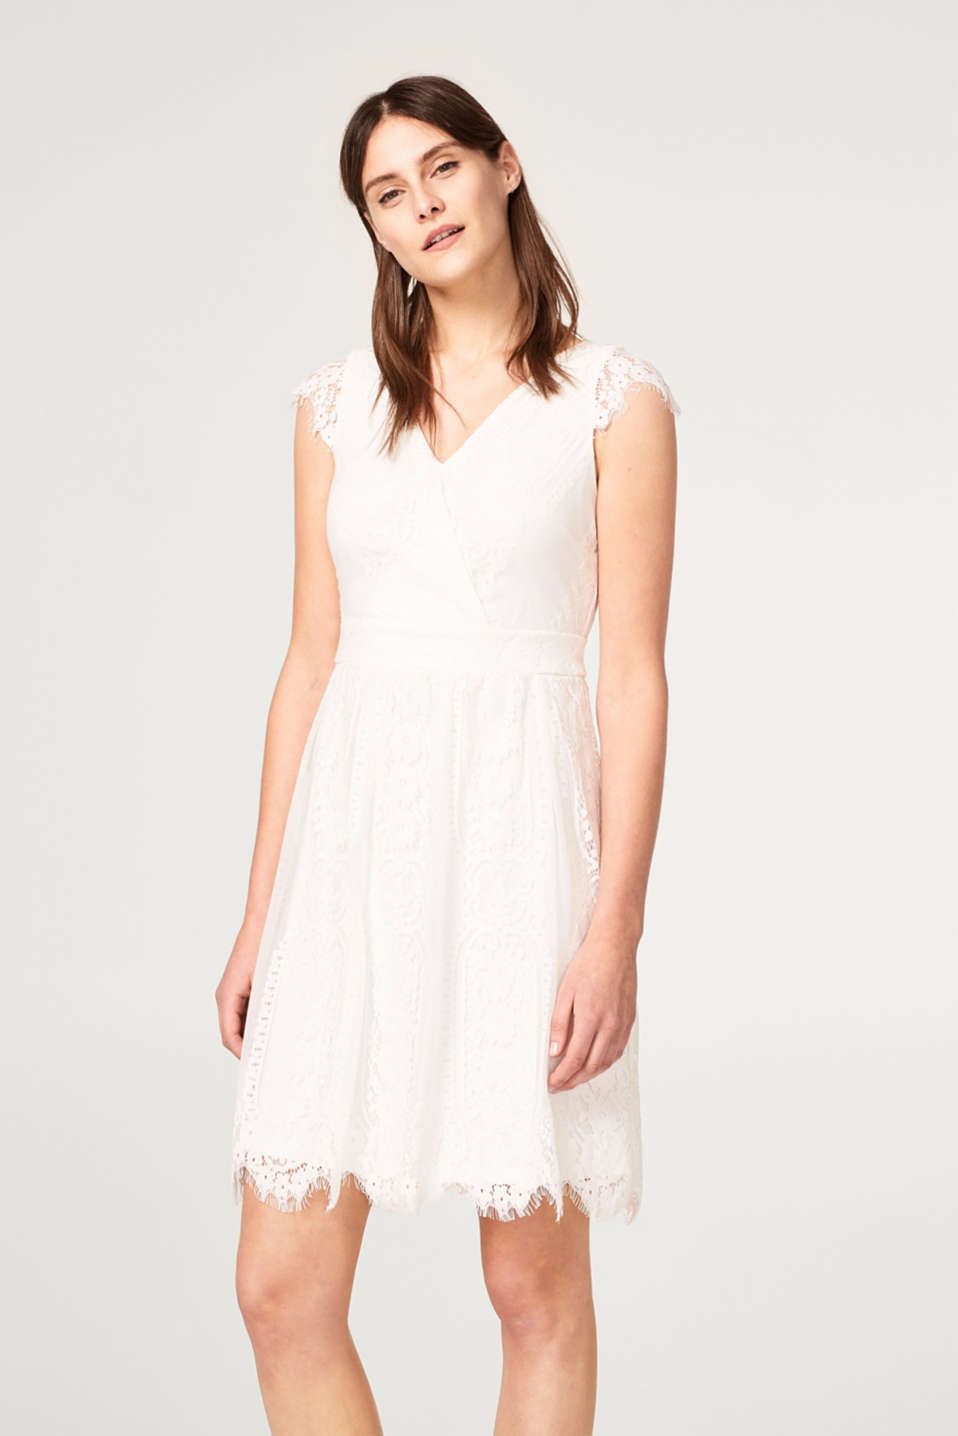 Esprit - Short wedding dress in floral lace